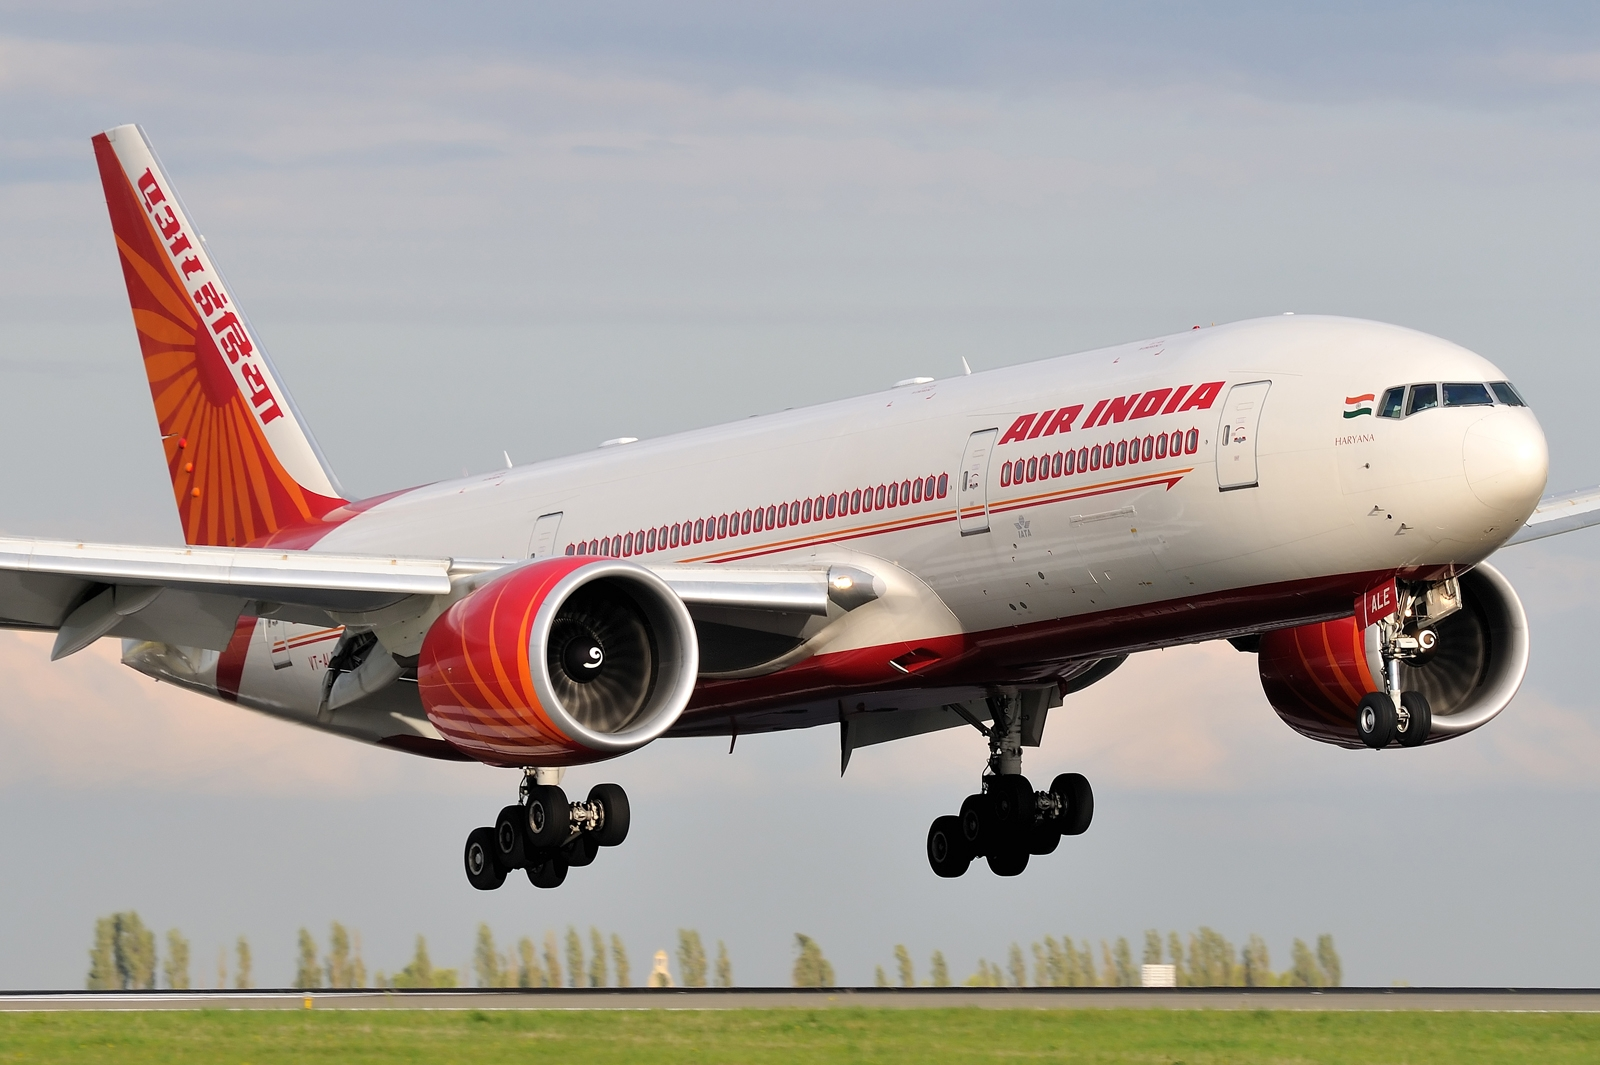 Boeing 777 200 Of Air India Takeoff Aircraft Wallpaper 3193